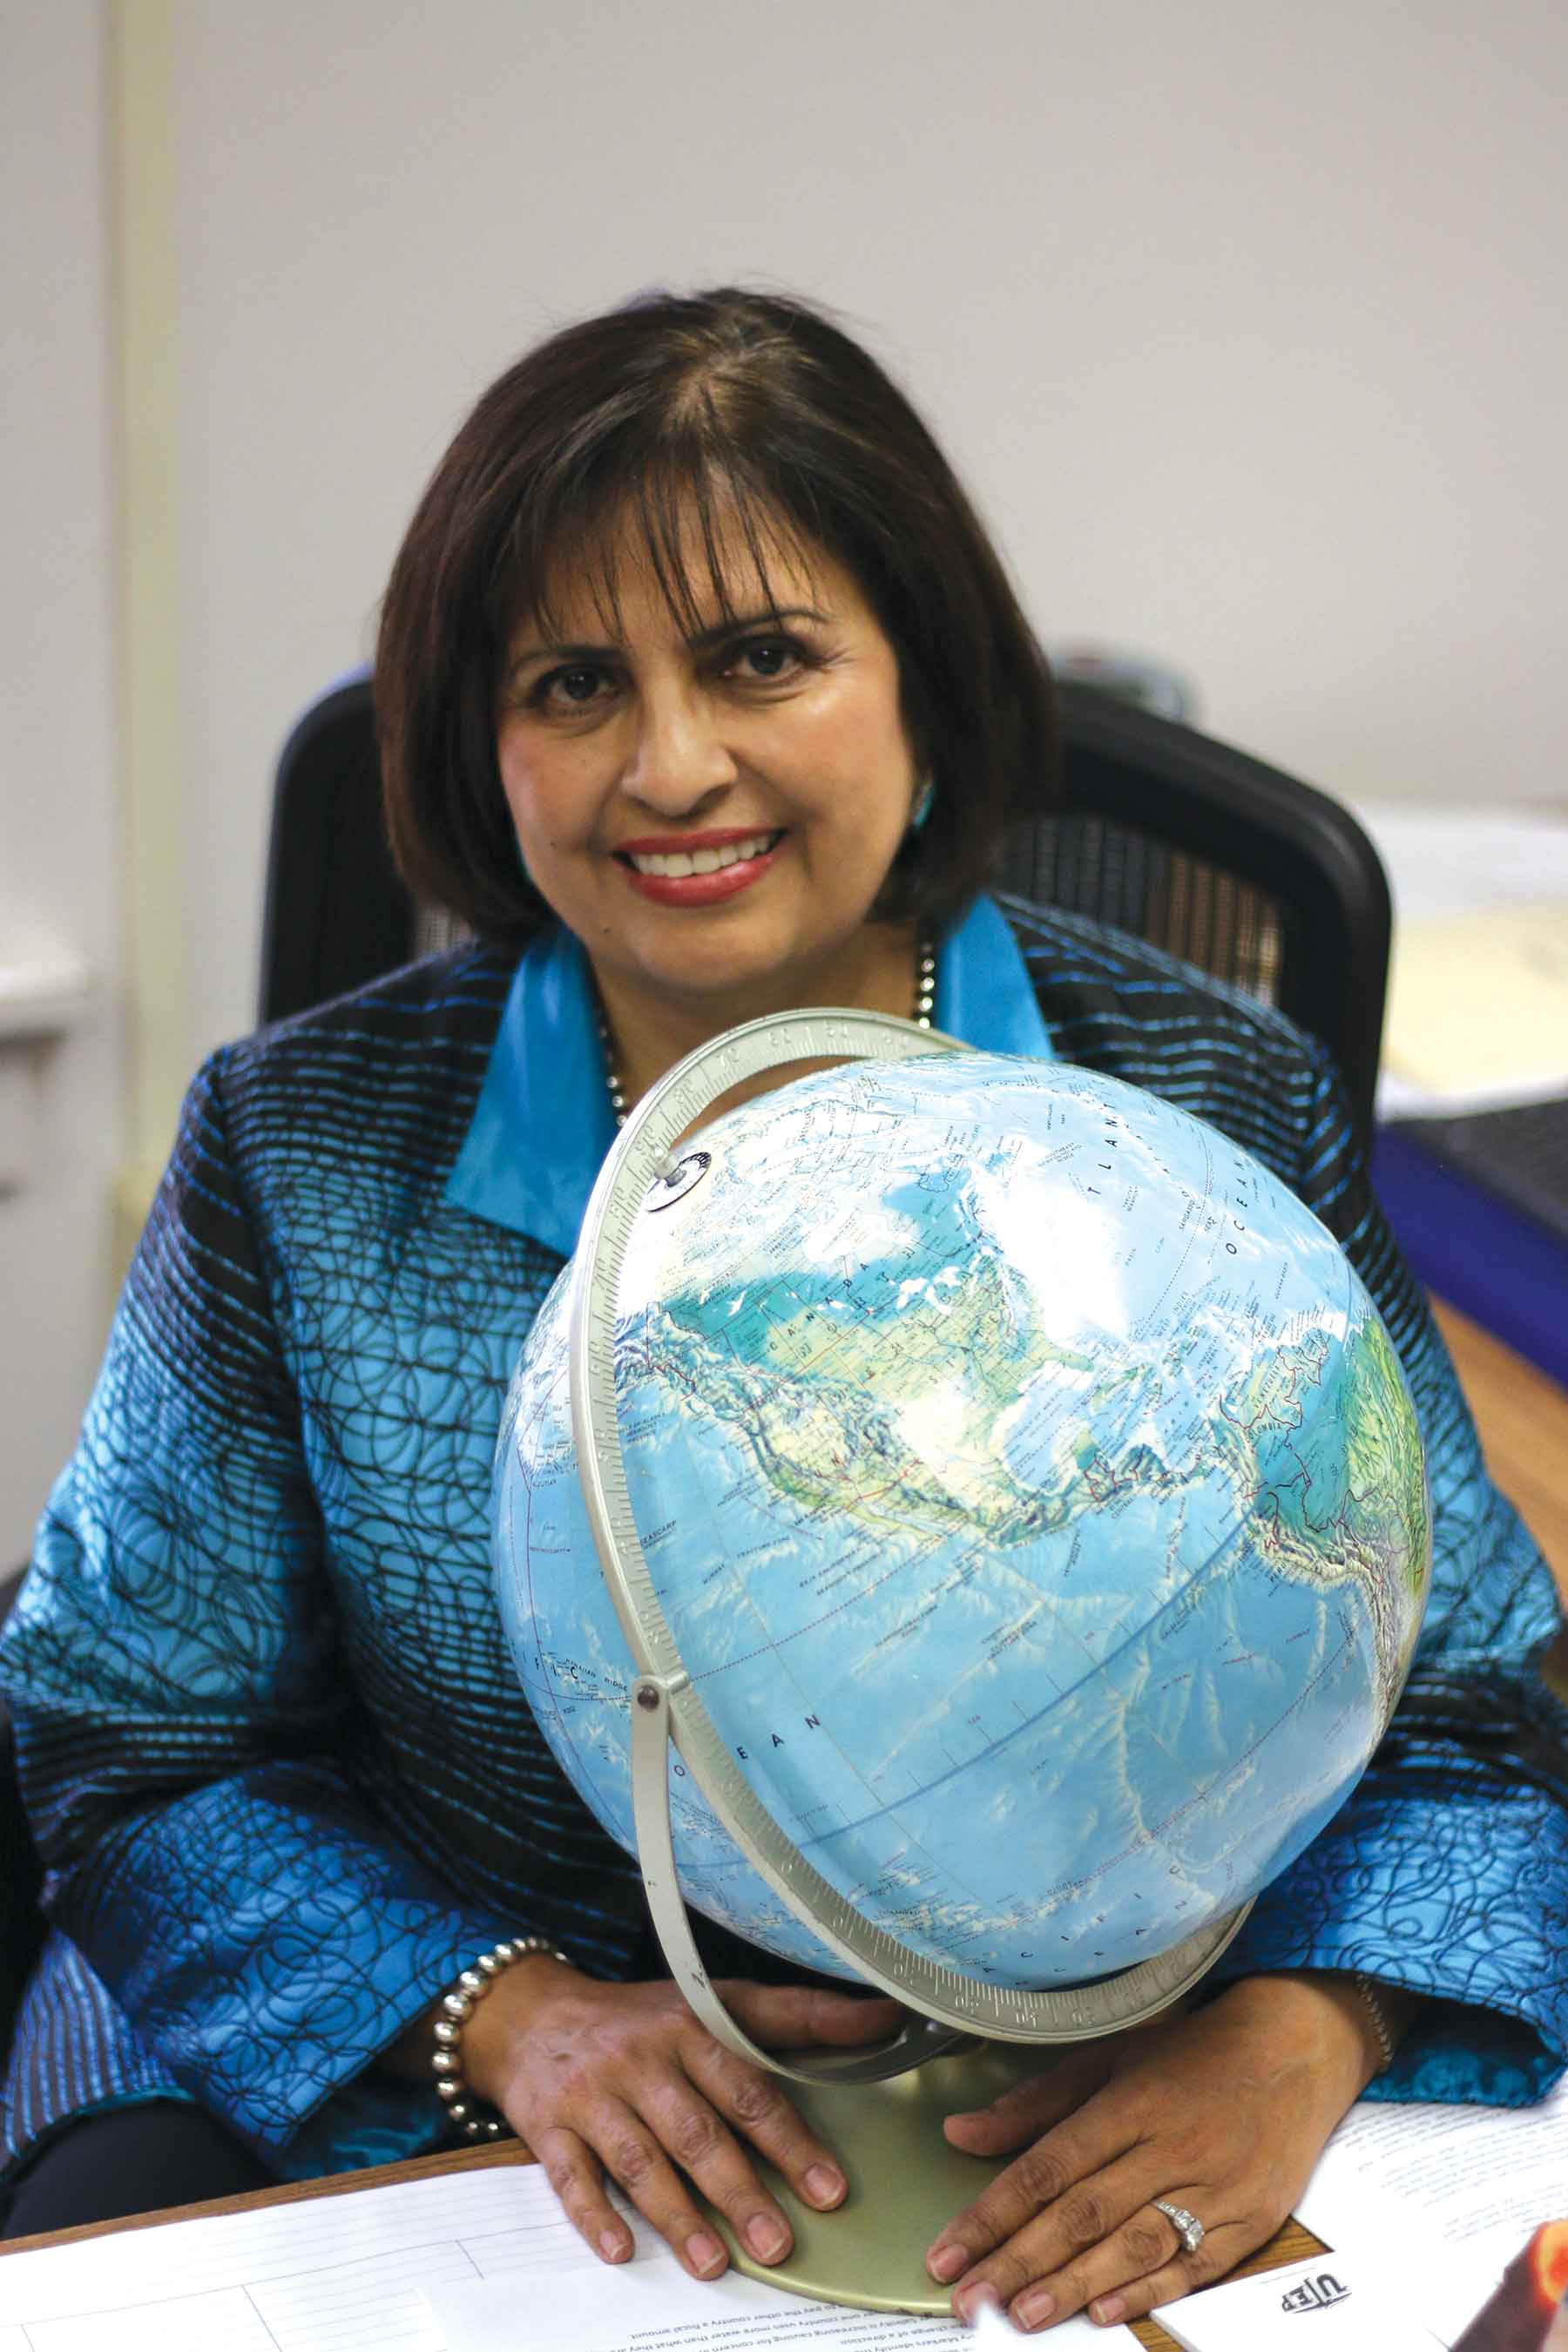 Political science professor Irasema Coronado now teaches at UTEP after serving as executive director of the Commission for the Environmental Cooperation in Quebec, Canada.